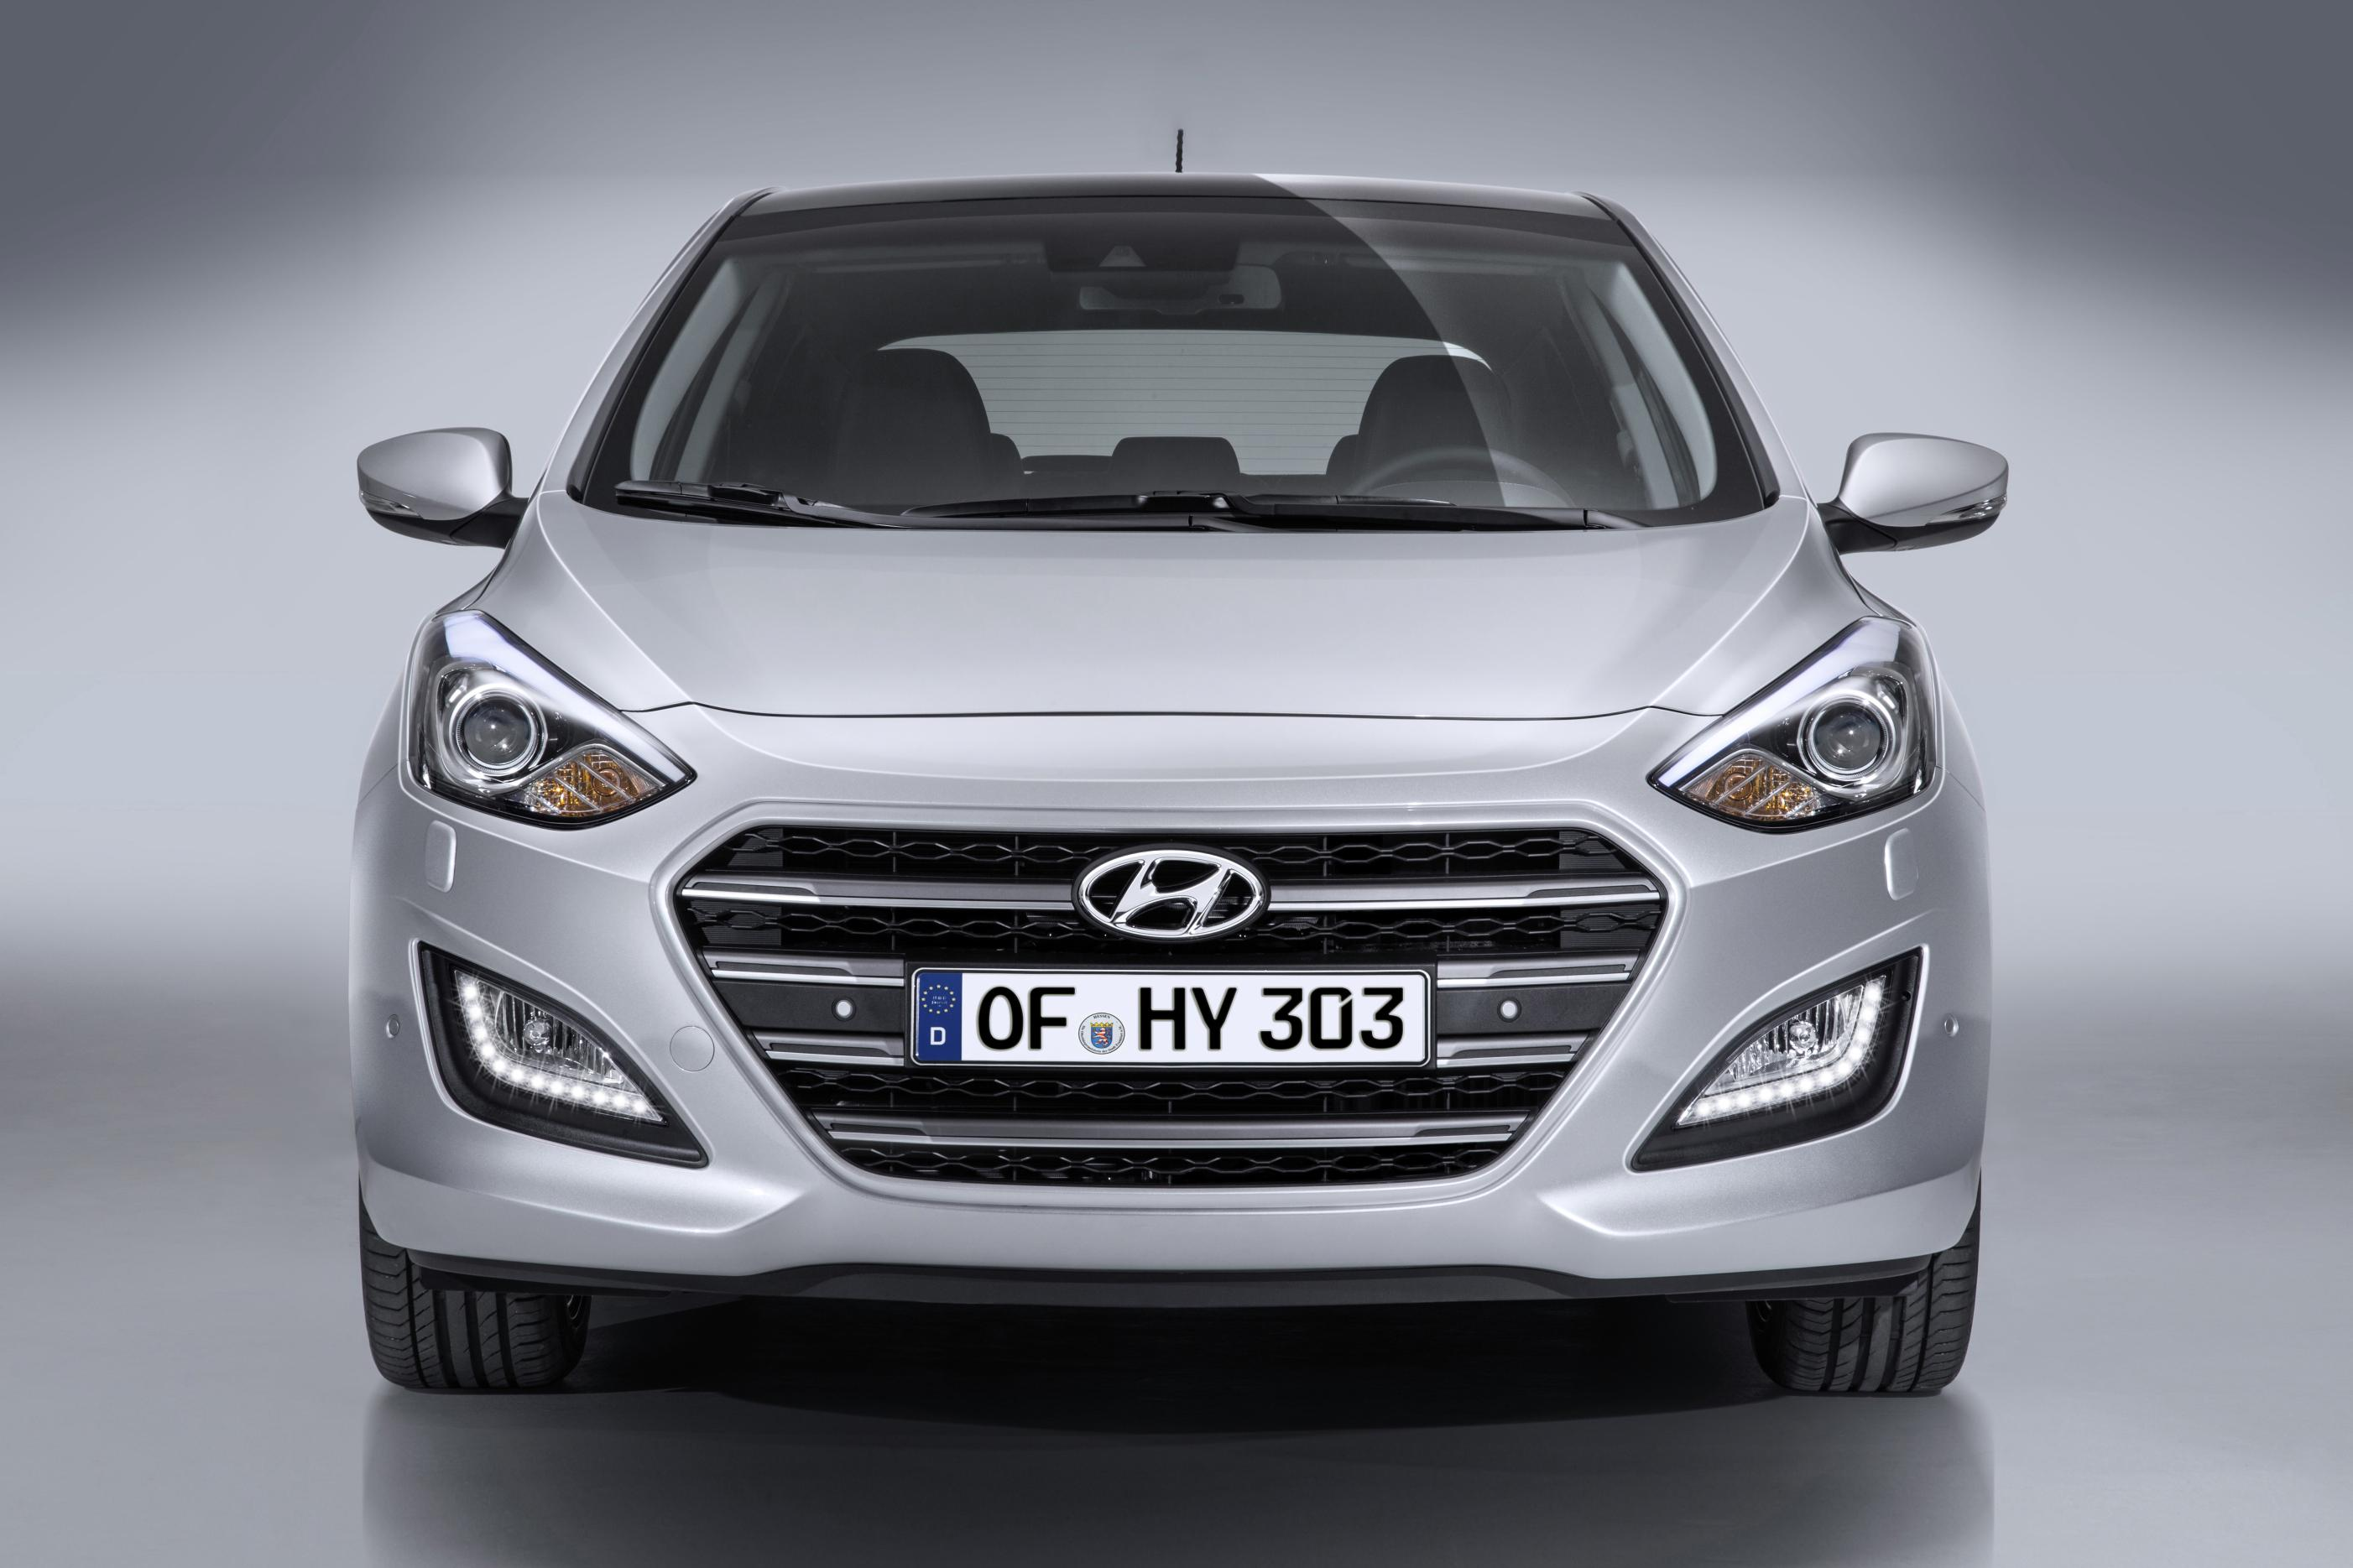 2015 Hyundai i30 Facelift Brings 7-Speed DCT to UK Market ...